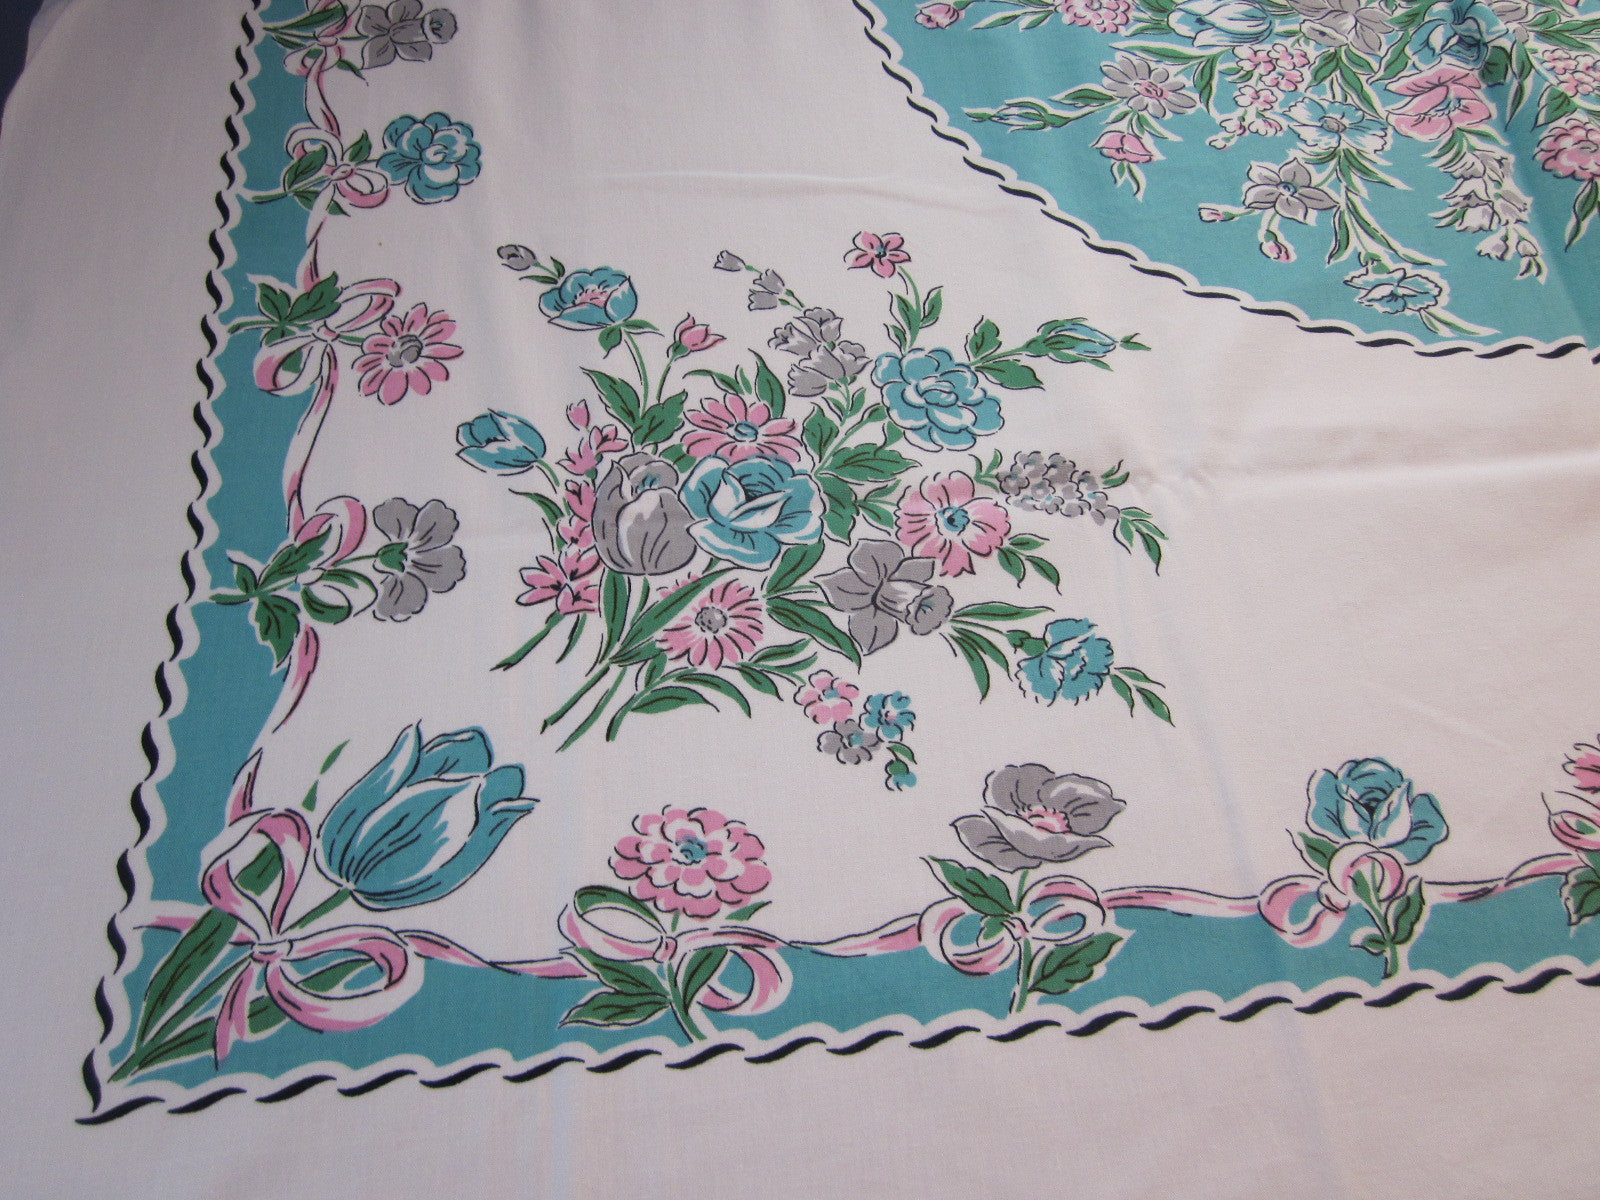 Pink Gray Flowers Aqua Circle Floral Vintage Printed Tablecloth (53 X 47)